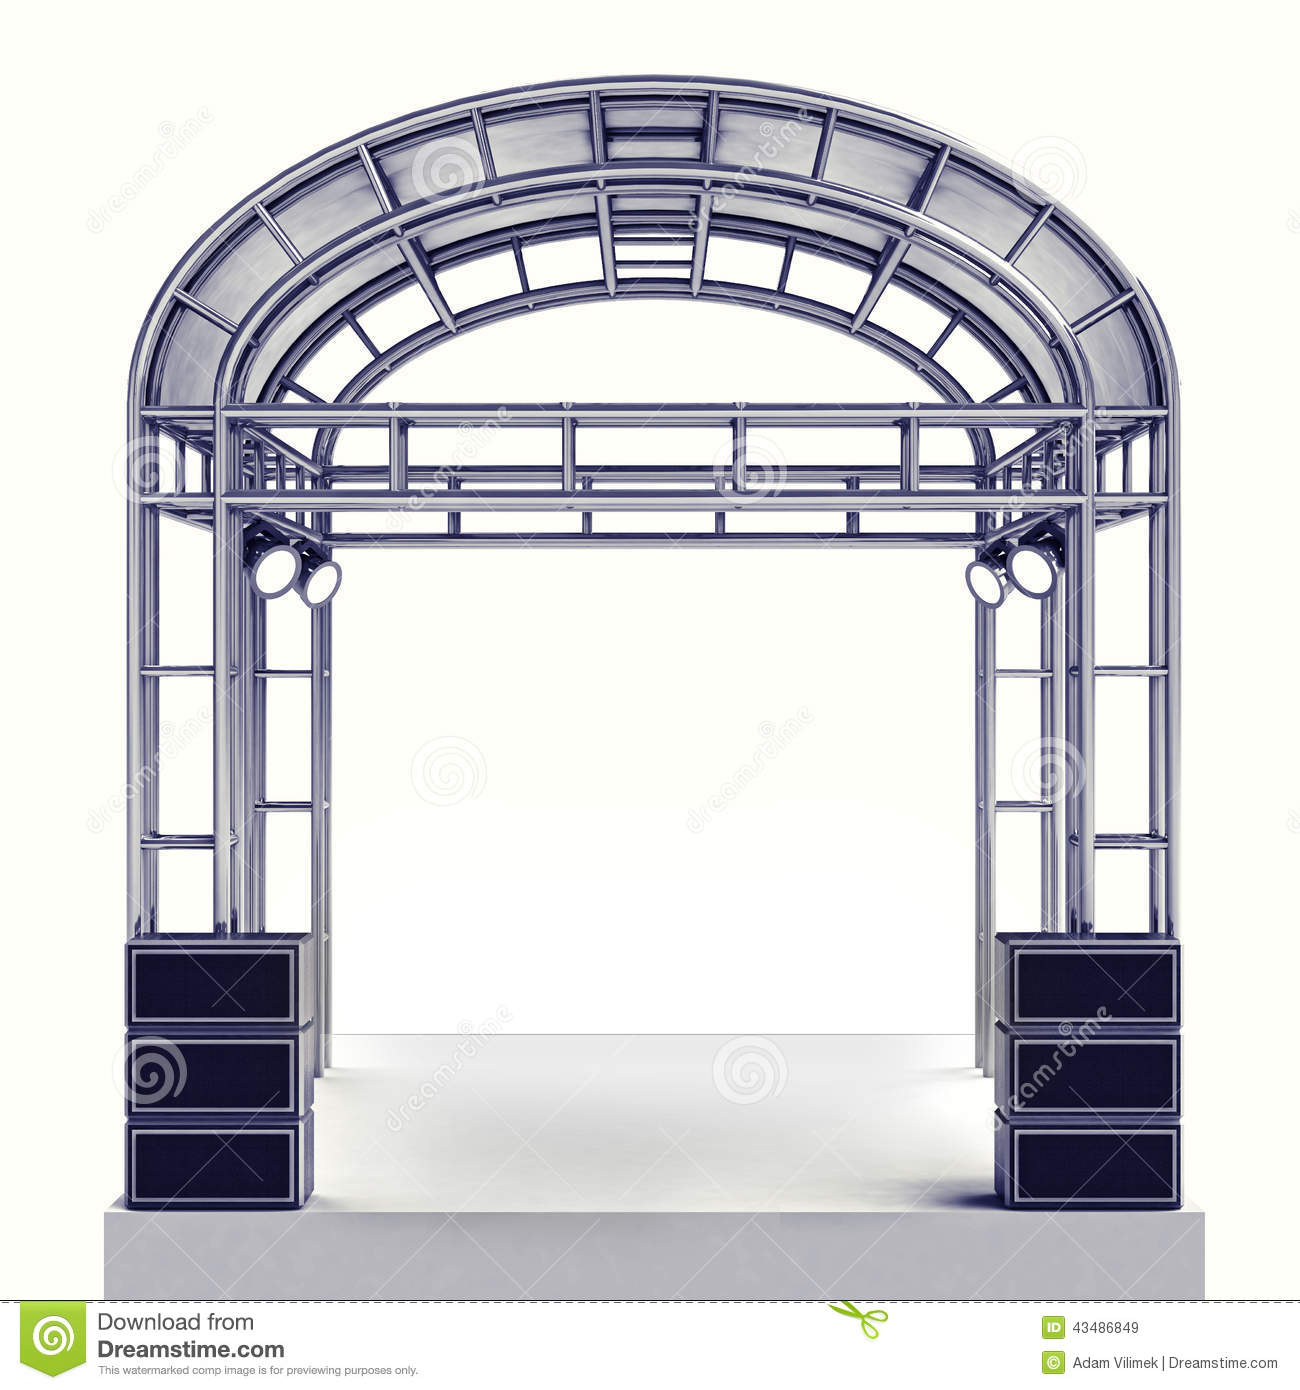 Staging Of Steel Images : Festival stage steel construction with speaker on white